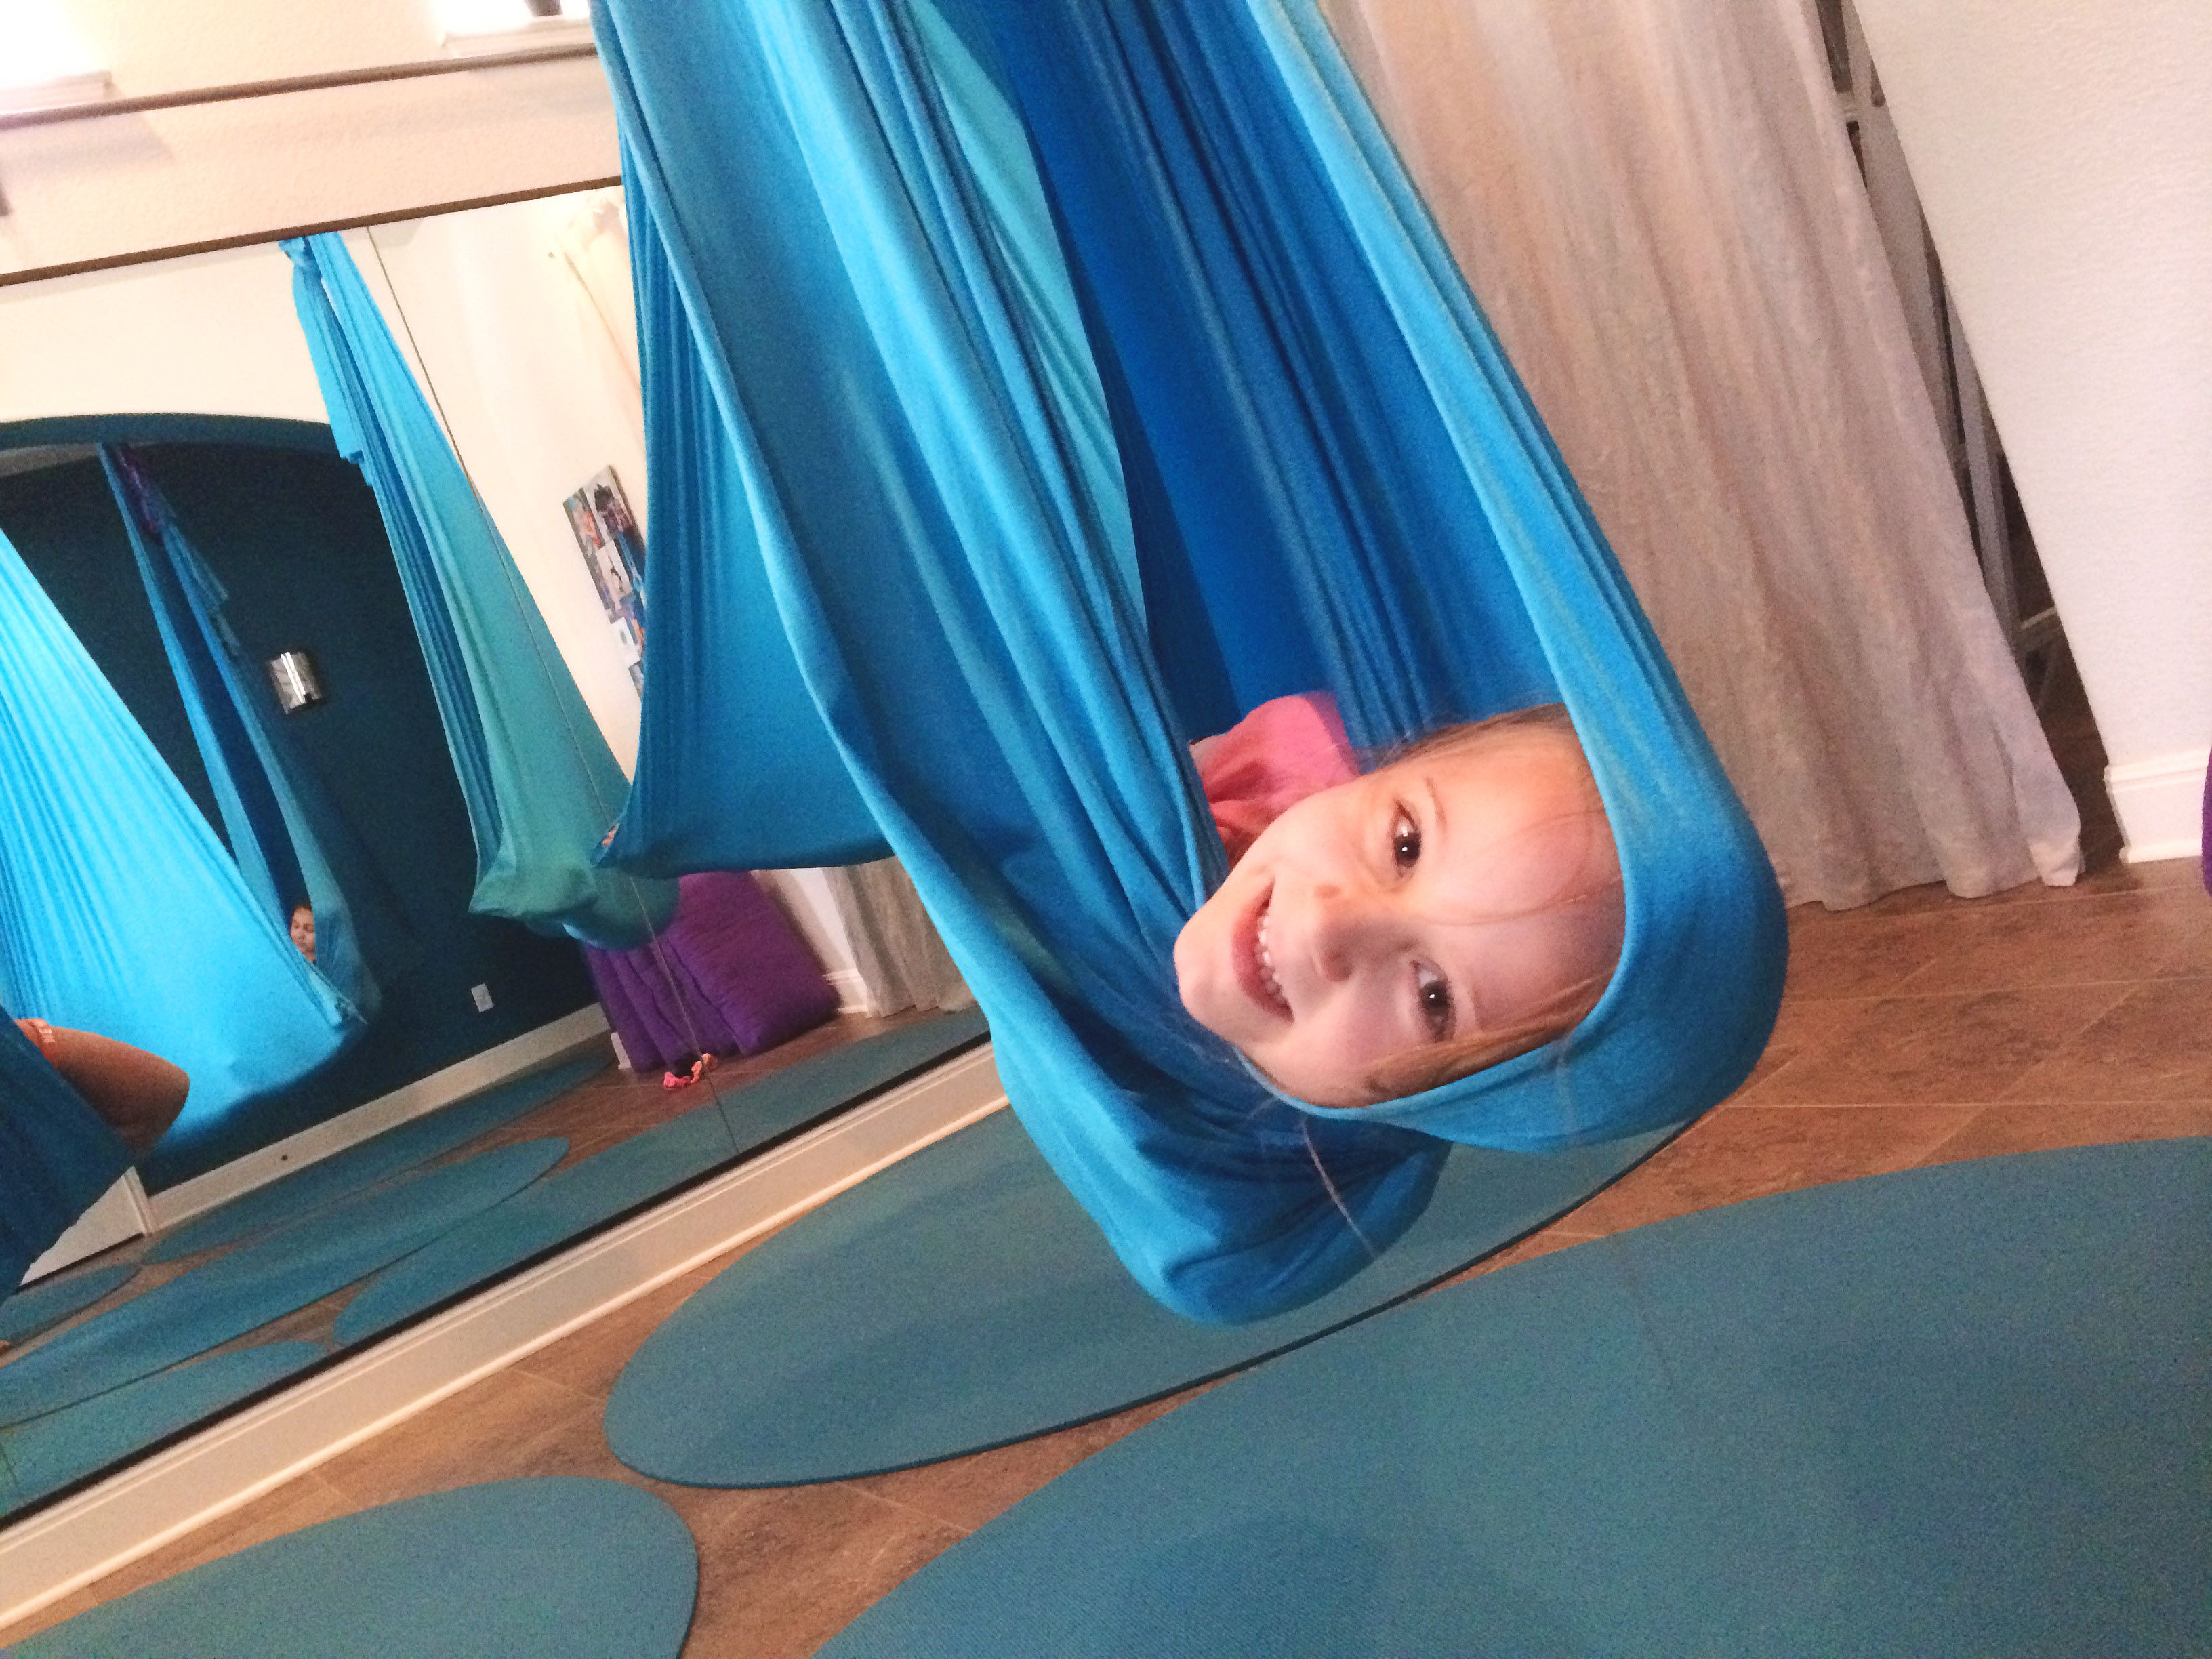 benefits of kids aerial yoga  the  pression of the hammock like a big hug benefits of kids aerial yoga  the  pression of the hammock like      rh   pinterest